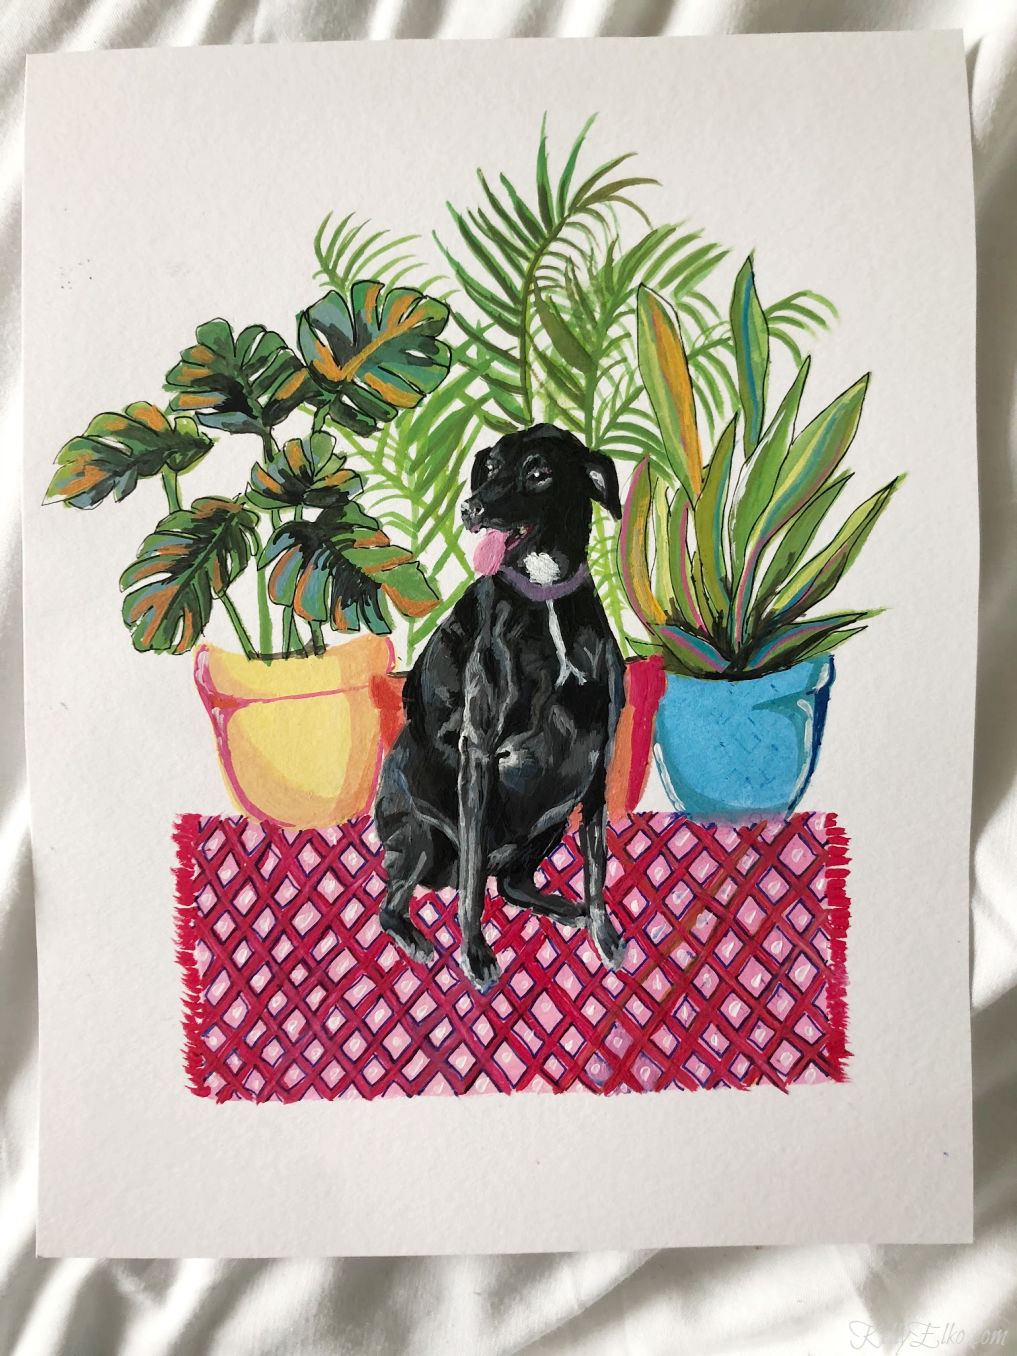 Custom Pet Portrait - love the fun color and patterns kellyelko.com #gouache #customart #originalart #artist #petportrait